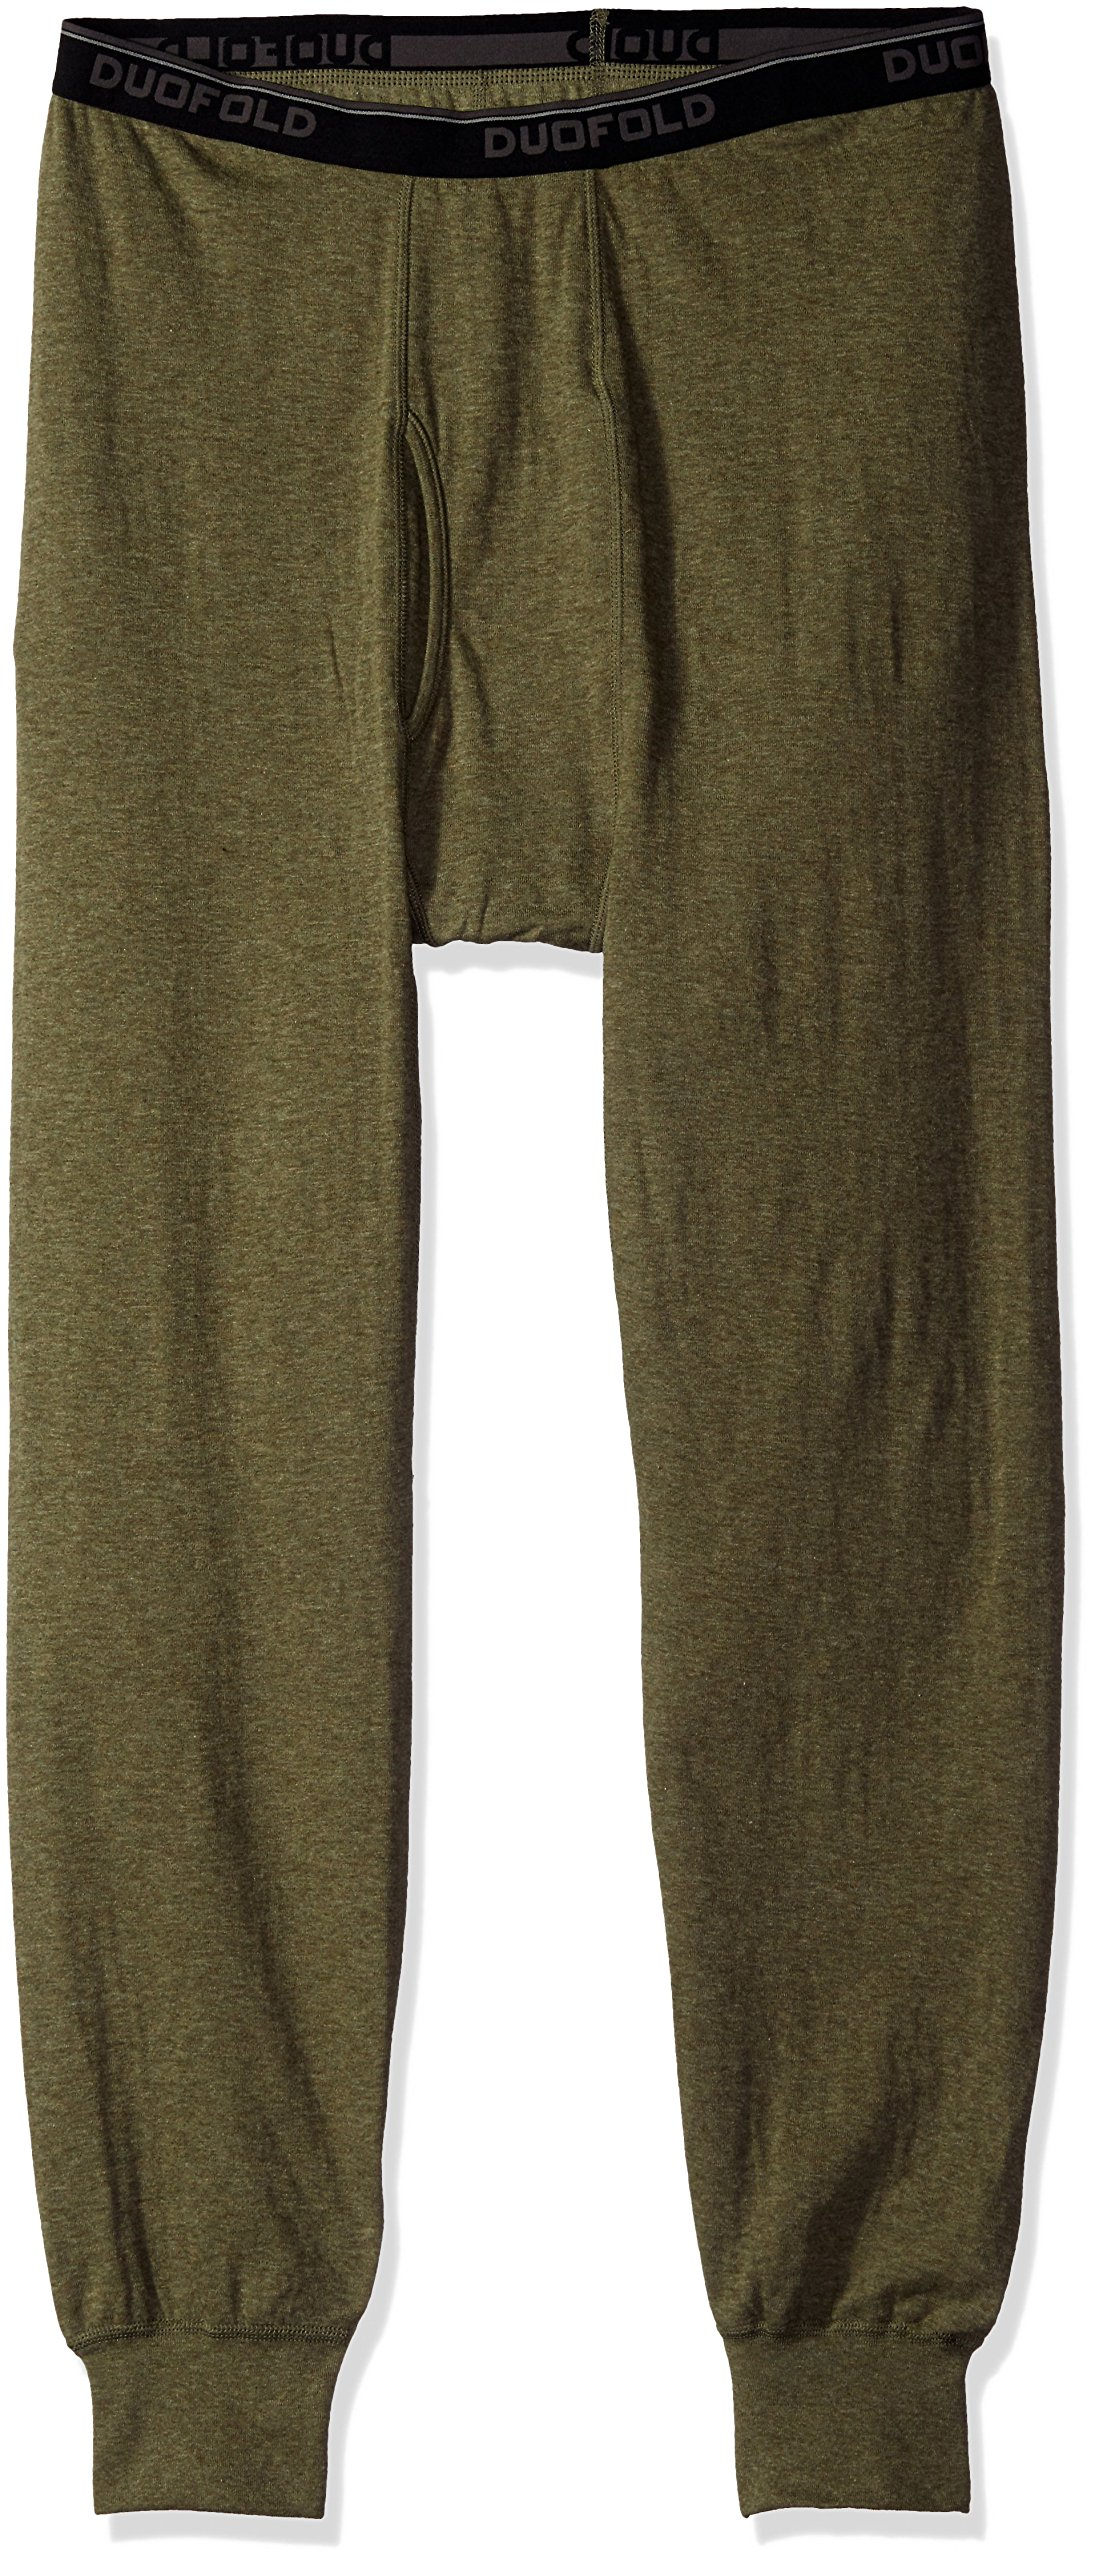 Duofold Men's Originals Ankle Length Bottom, Olive Heather, 2X Large by Duofold